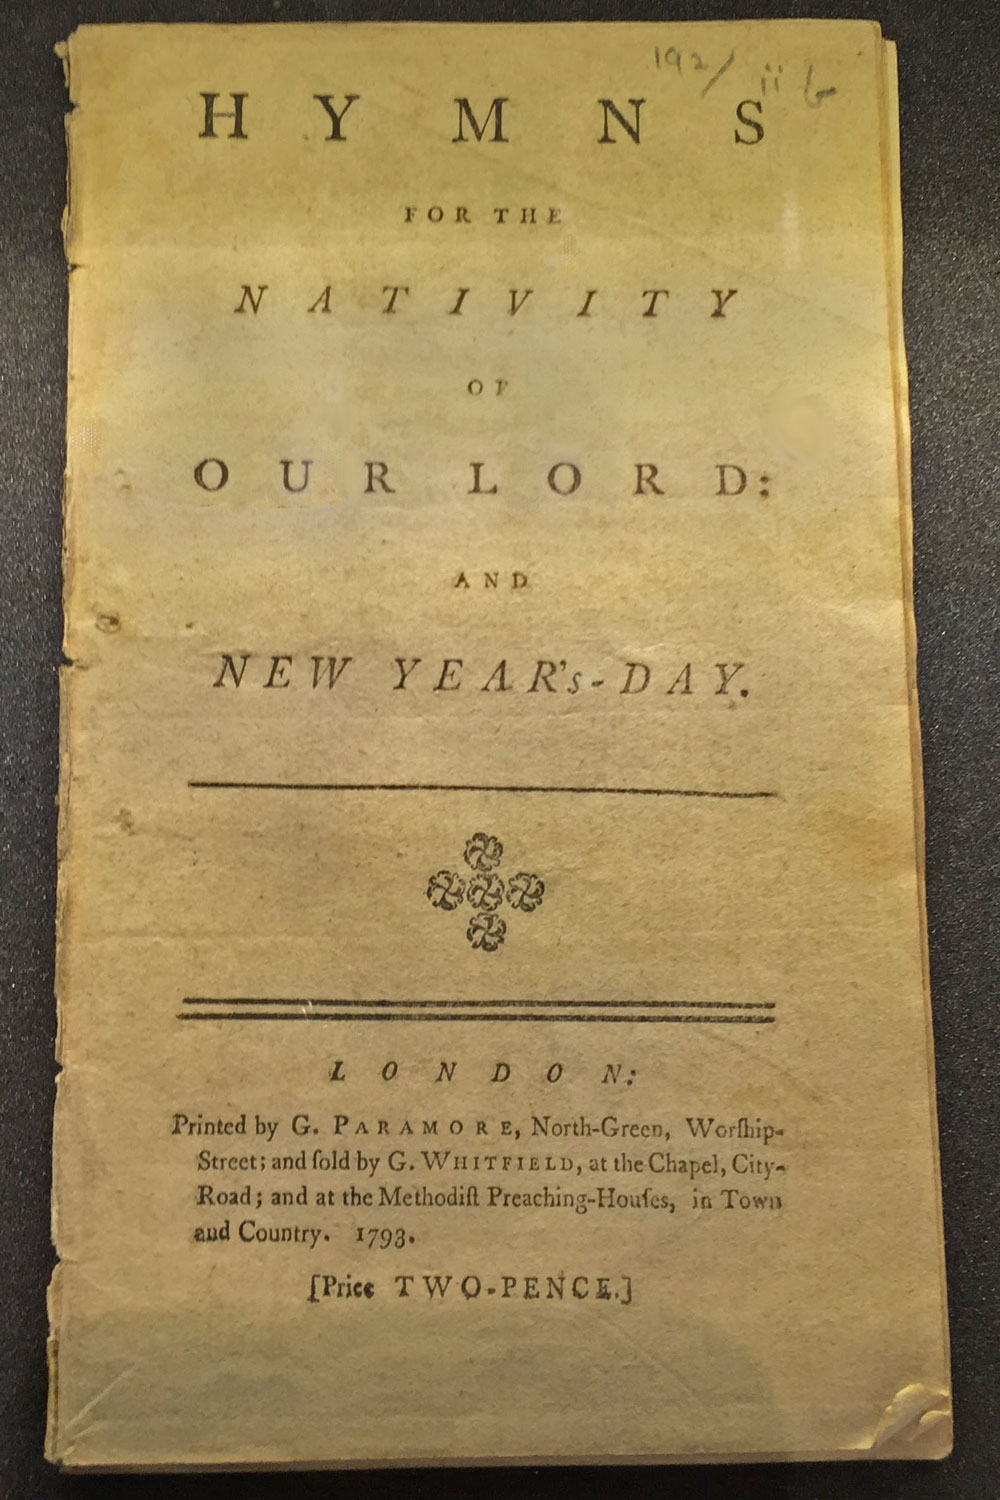 Charles Wesley first published Hymns for the Nativity of the Lord in 1745. This later edition is from 1793.